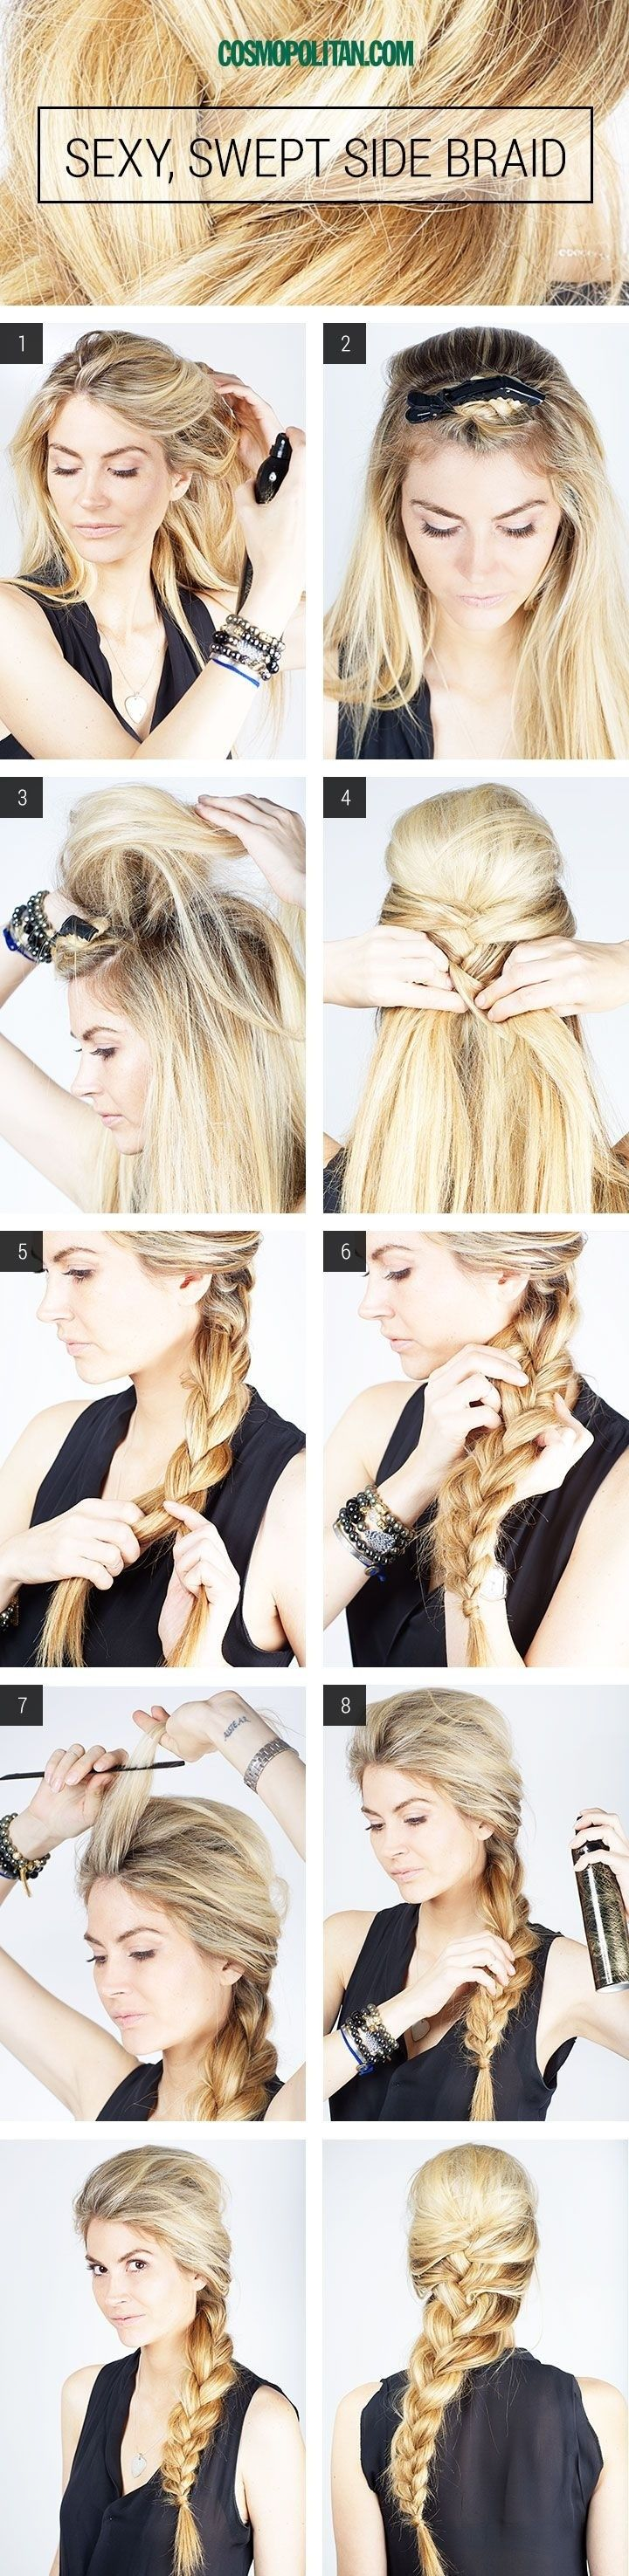 best hair images on pinterest hairstyle ideas hair makeup and